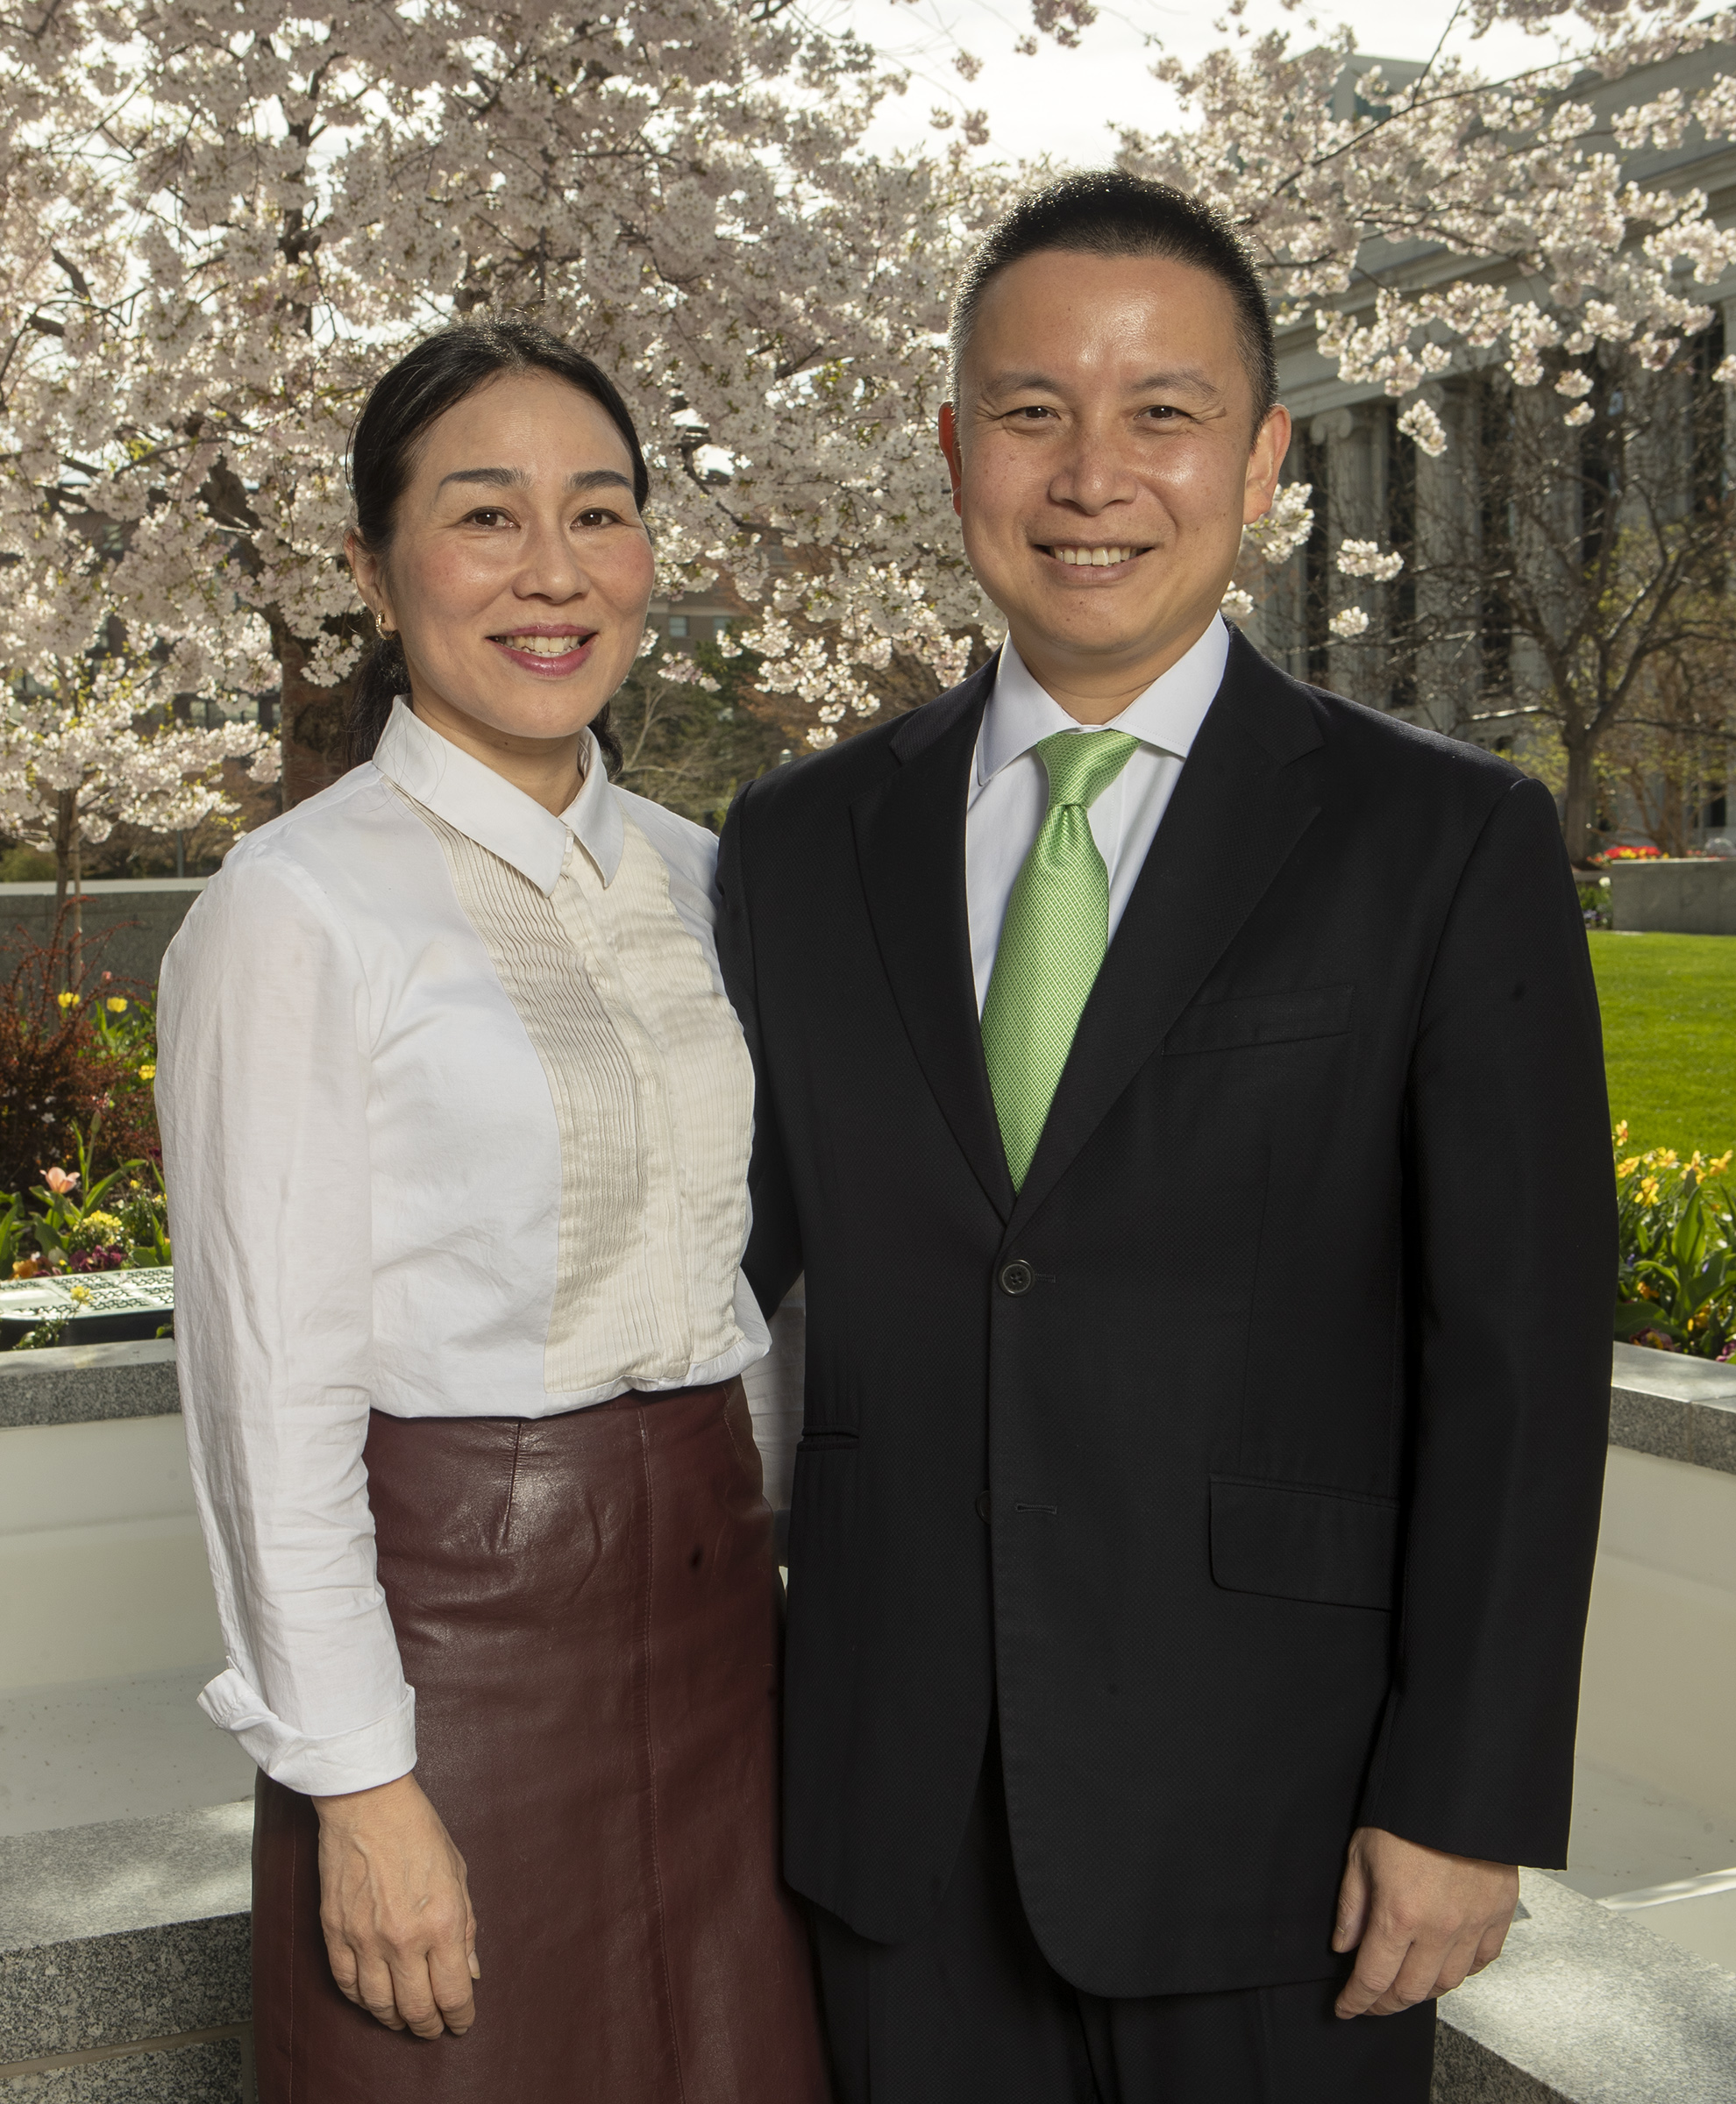 Sister Naomi Toma Tai and Elder Benjamin M. Z. Tai pose for a photo at the Church Office Building in Salt Lake City on Monday, April 8, 2019. Elder Tai was called to serve as a General Authority Seventy.